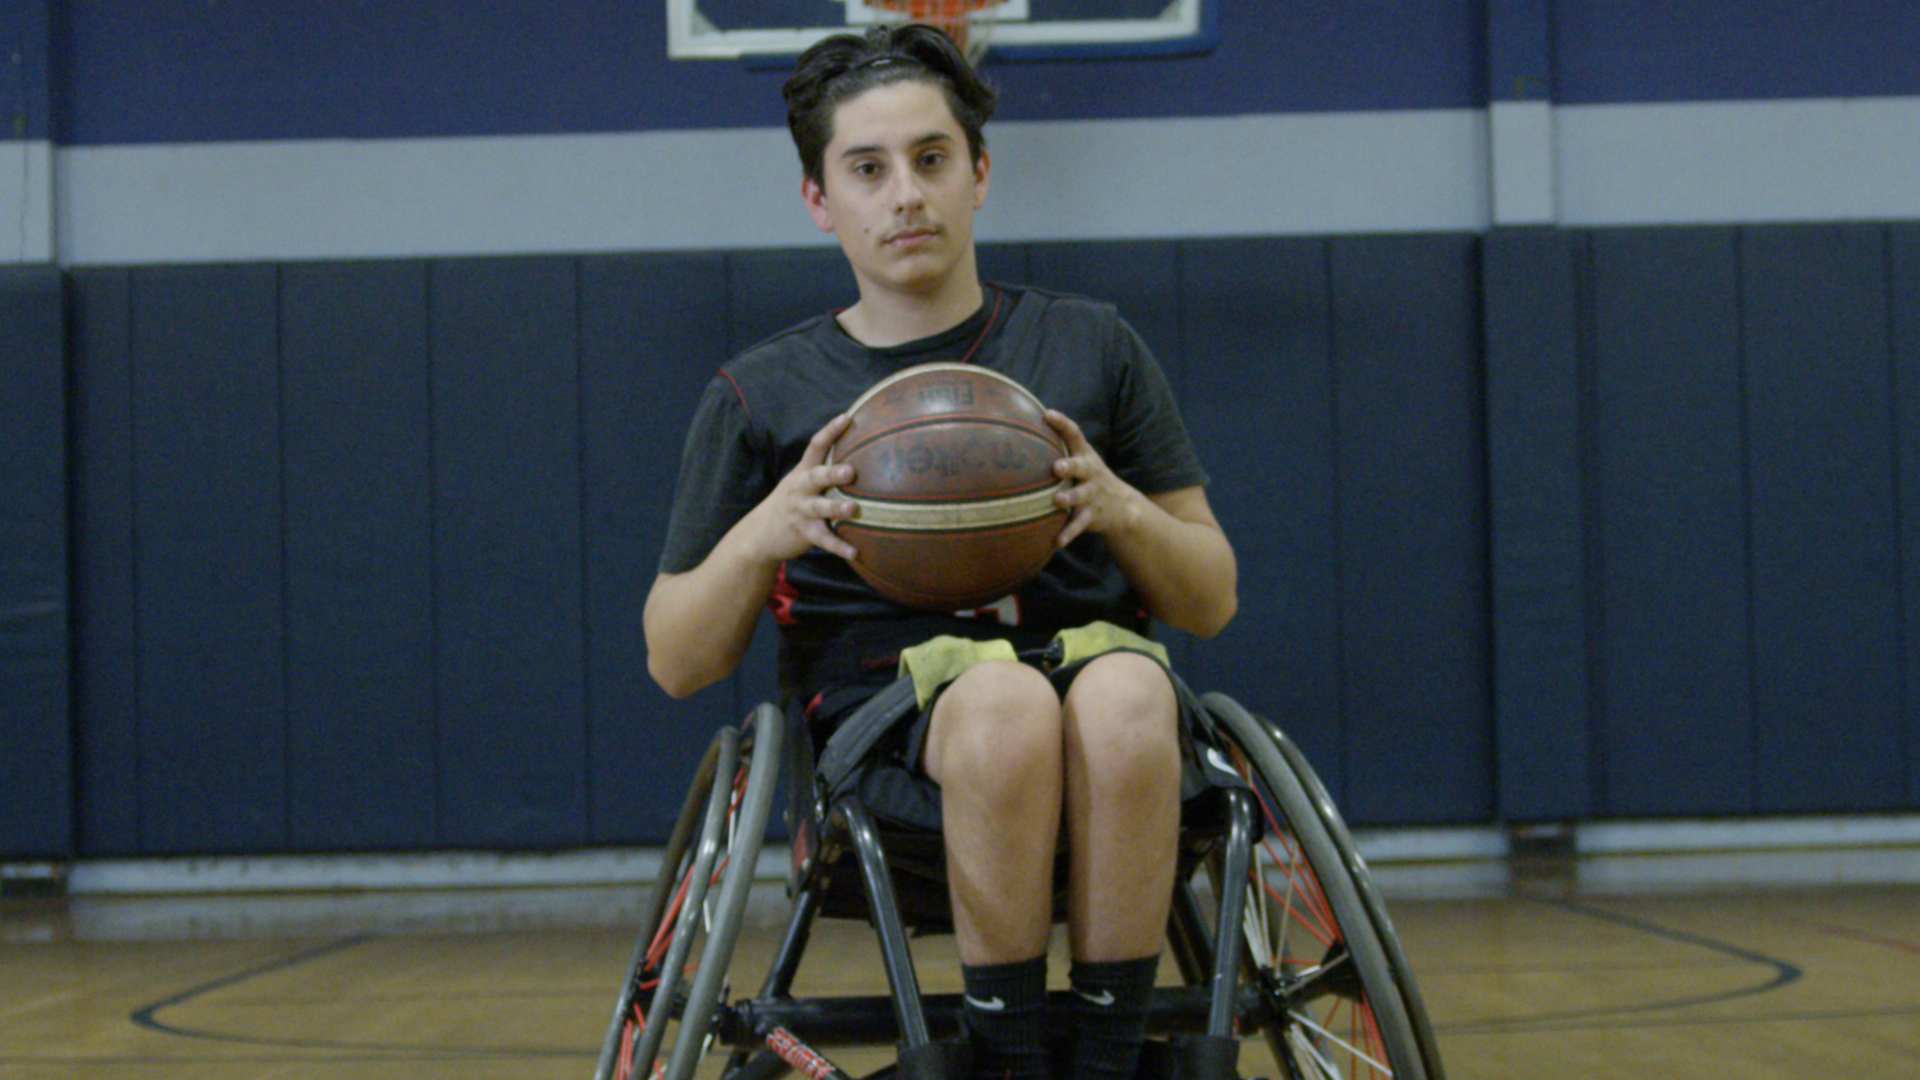 Danny playing wheelchair baseball.